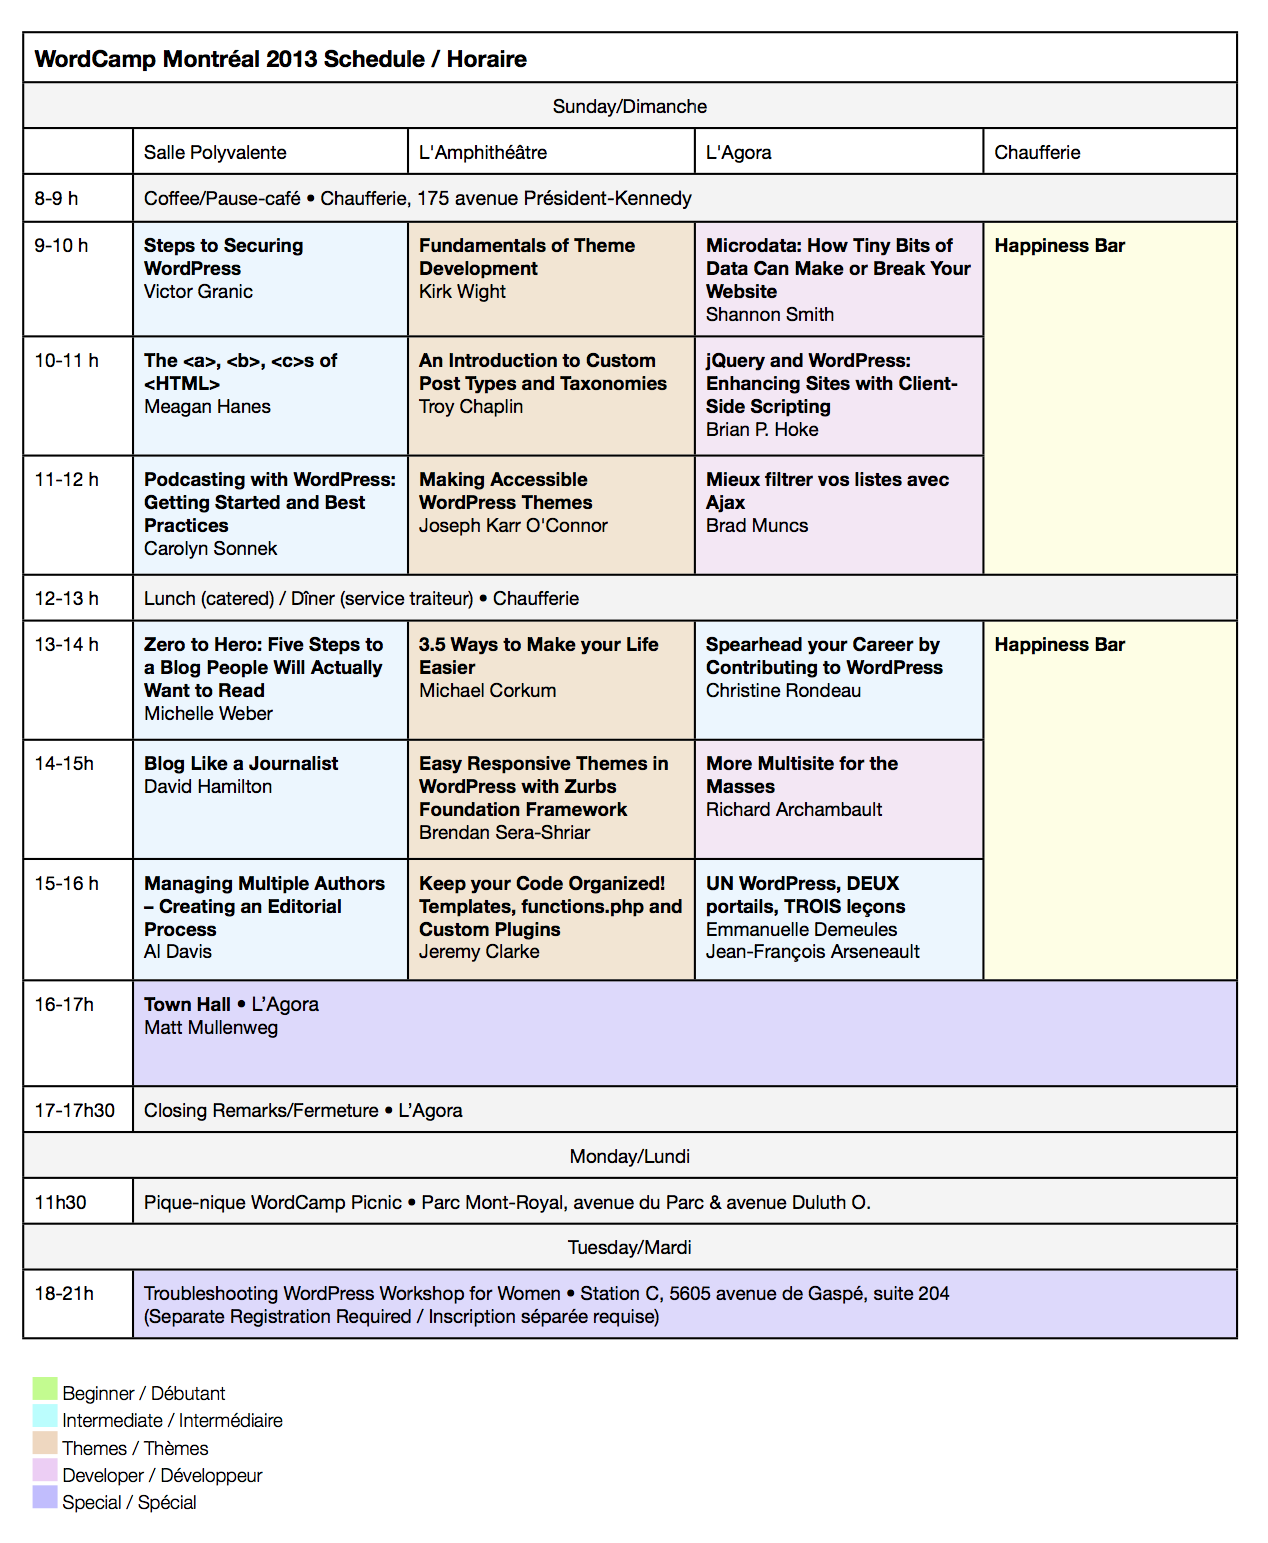 Schedule for Sunday, Monday and Tuesday: WordCamp Montreal 2013. Updated June 28.